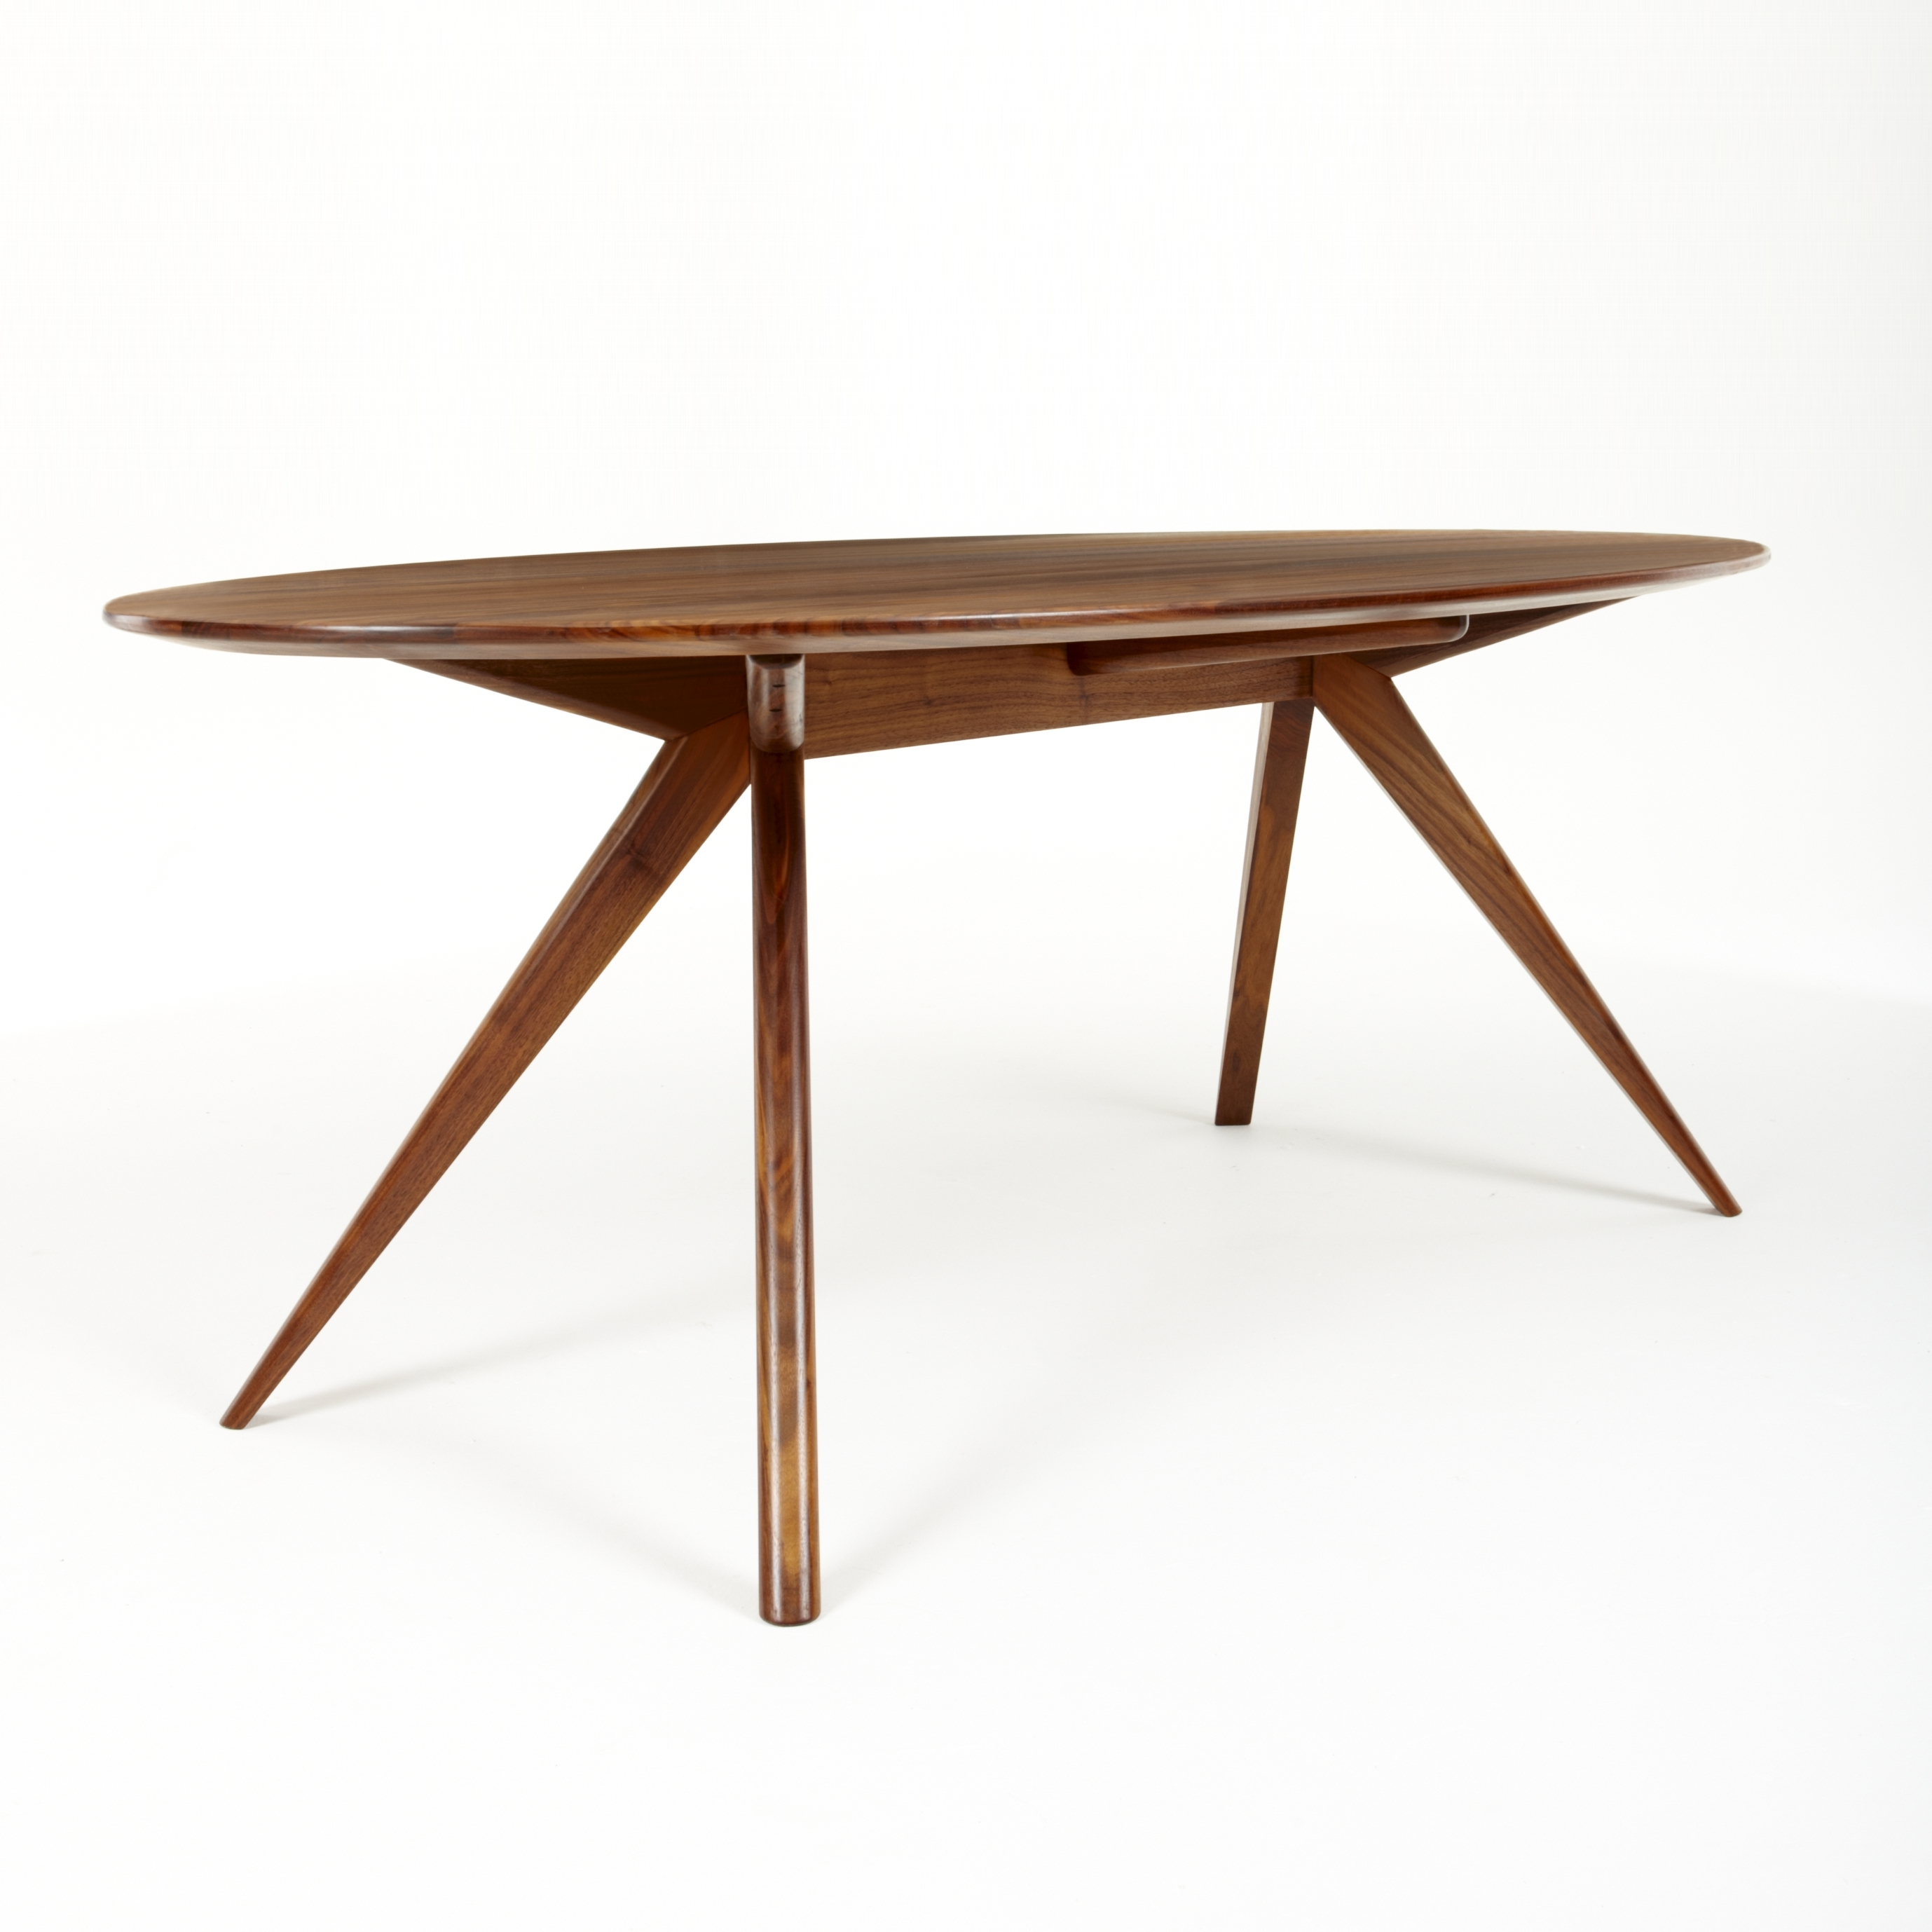 Oskar table ovale by dare studio design sean dare - Table a manger ovale ...